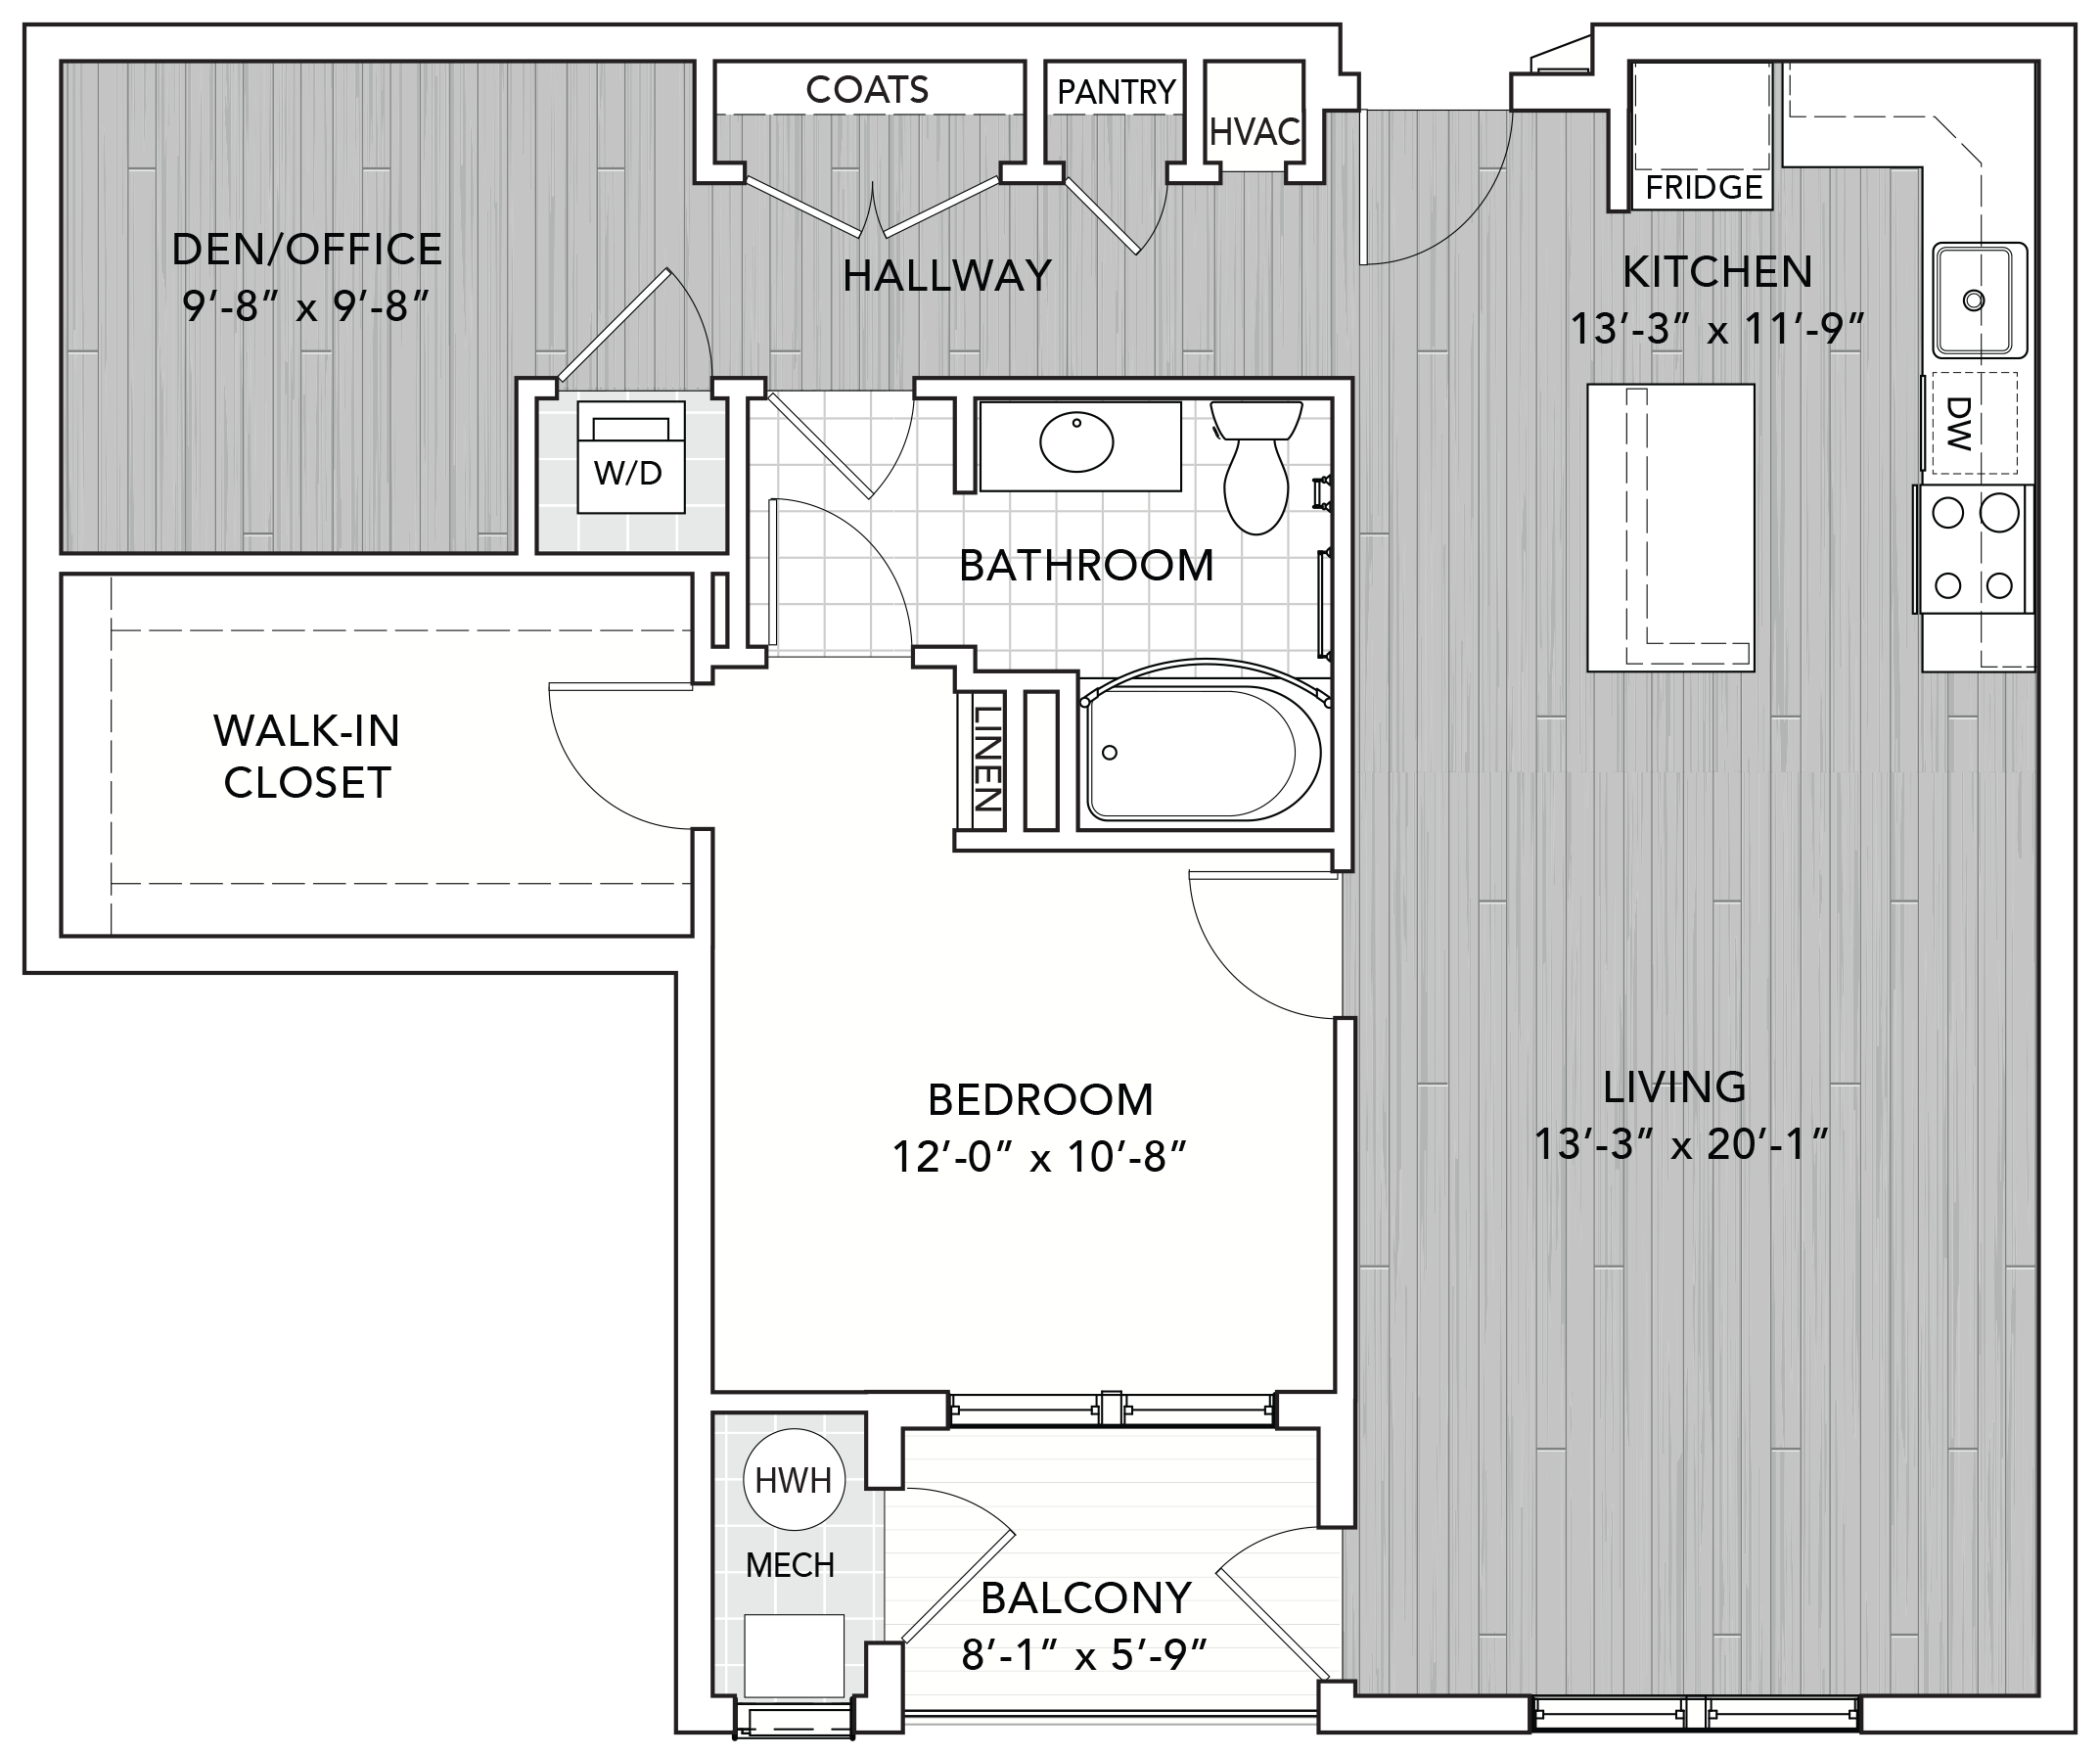 P0655013 parksquare a11 1054 2 floorplan